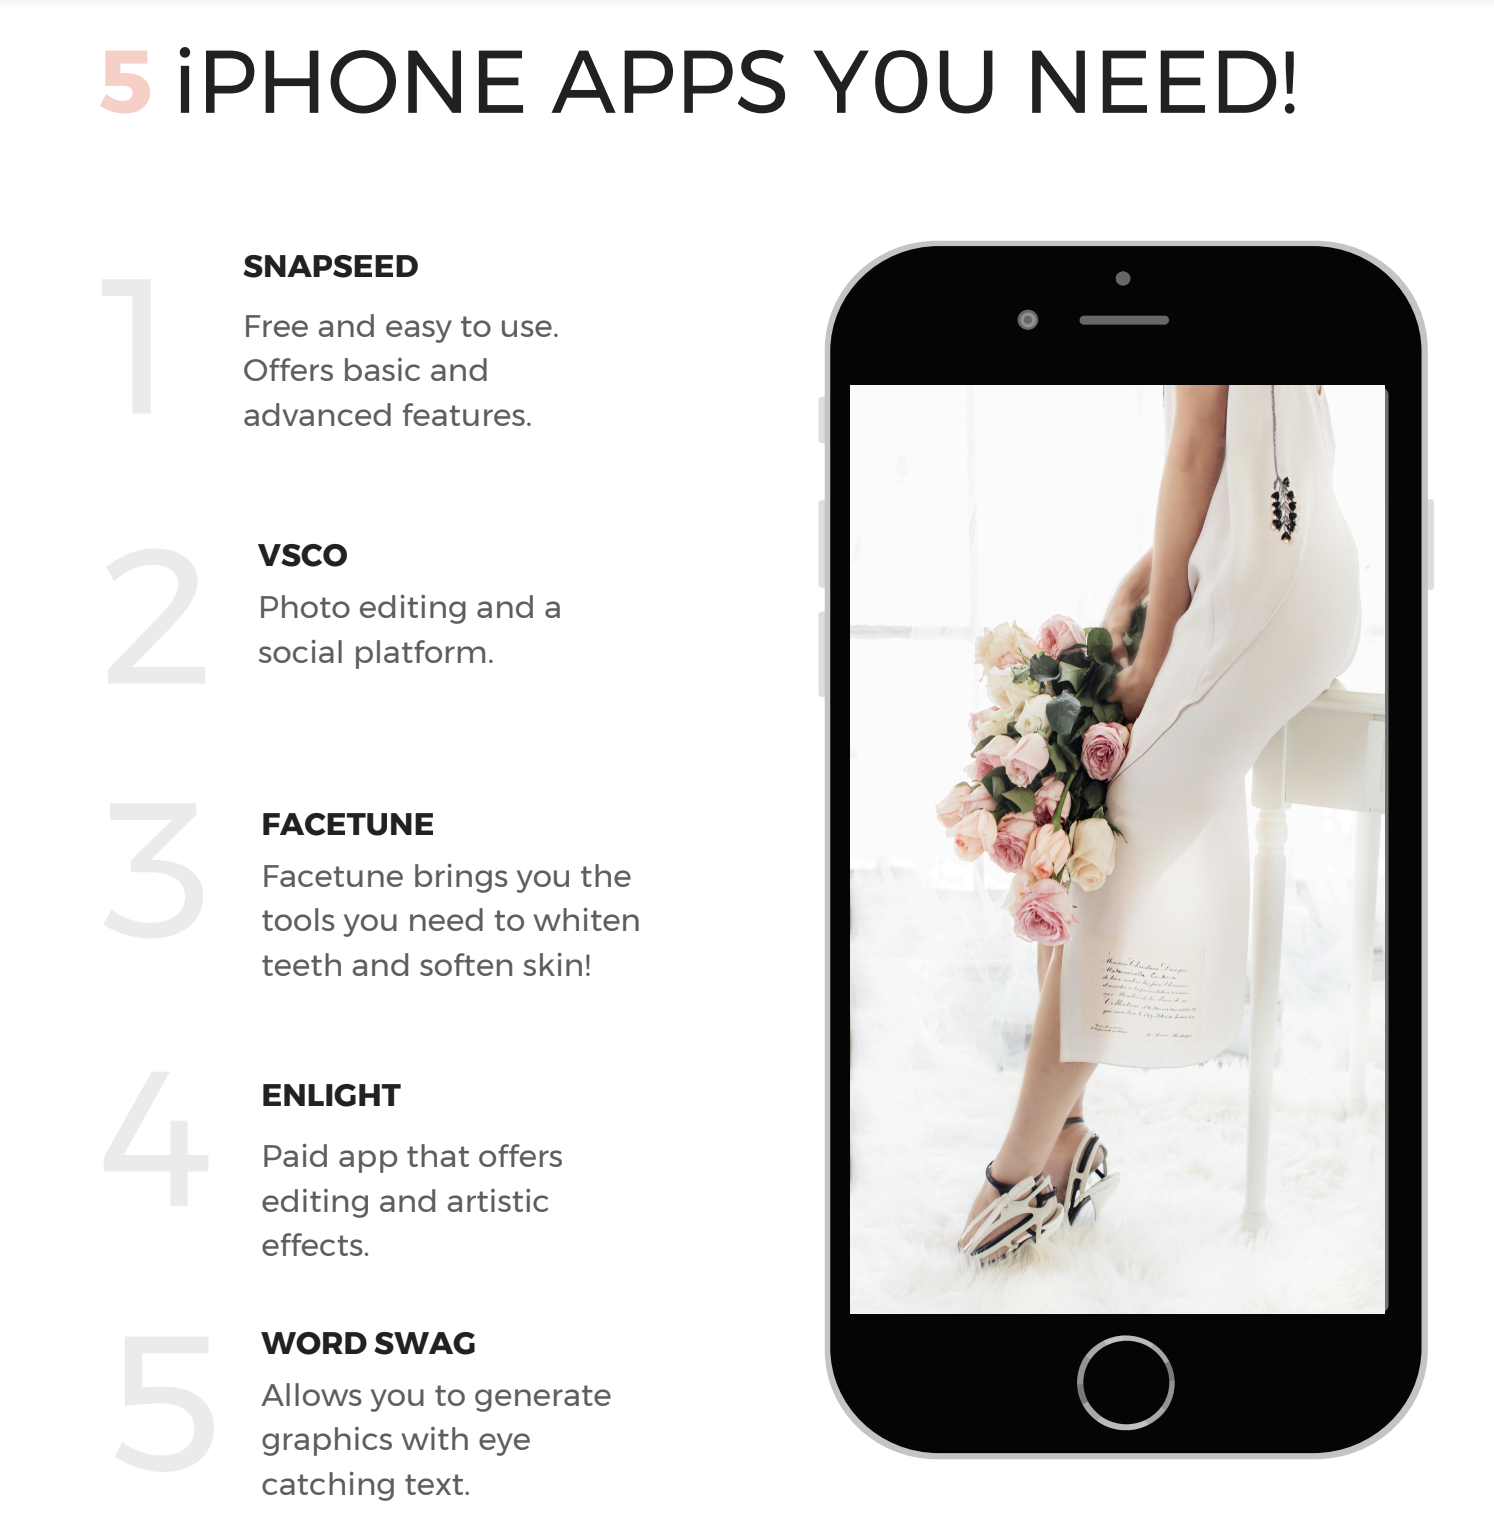 This FREE photo guide is all about the 5 iPhone Apps you